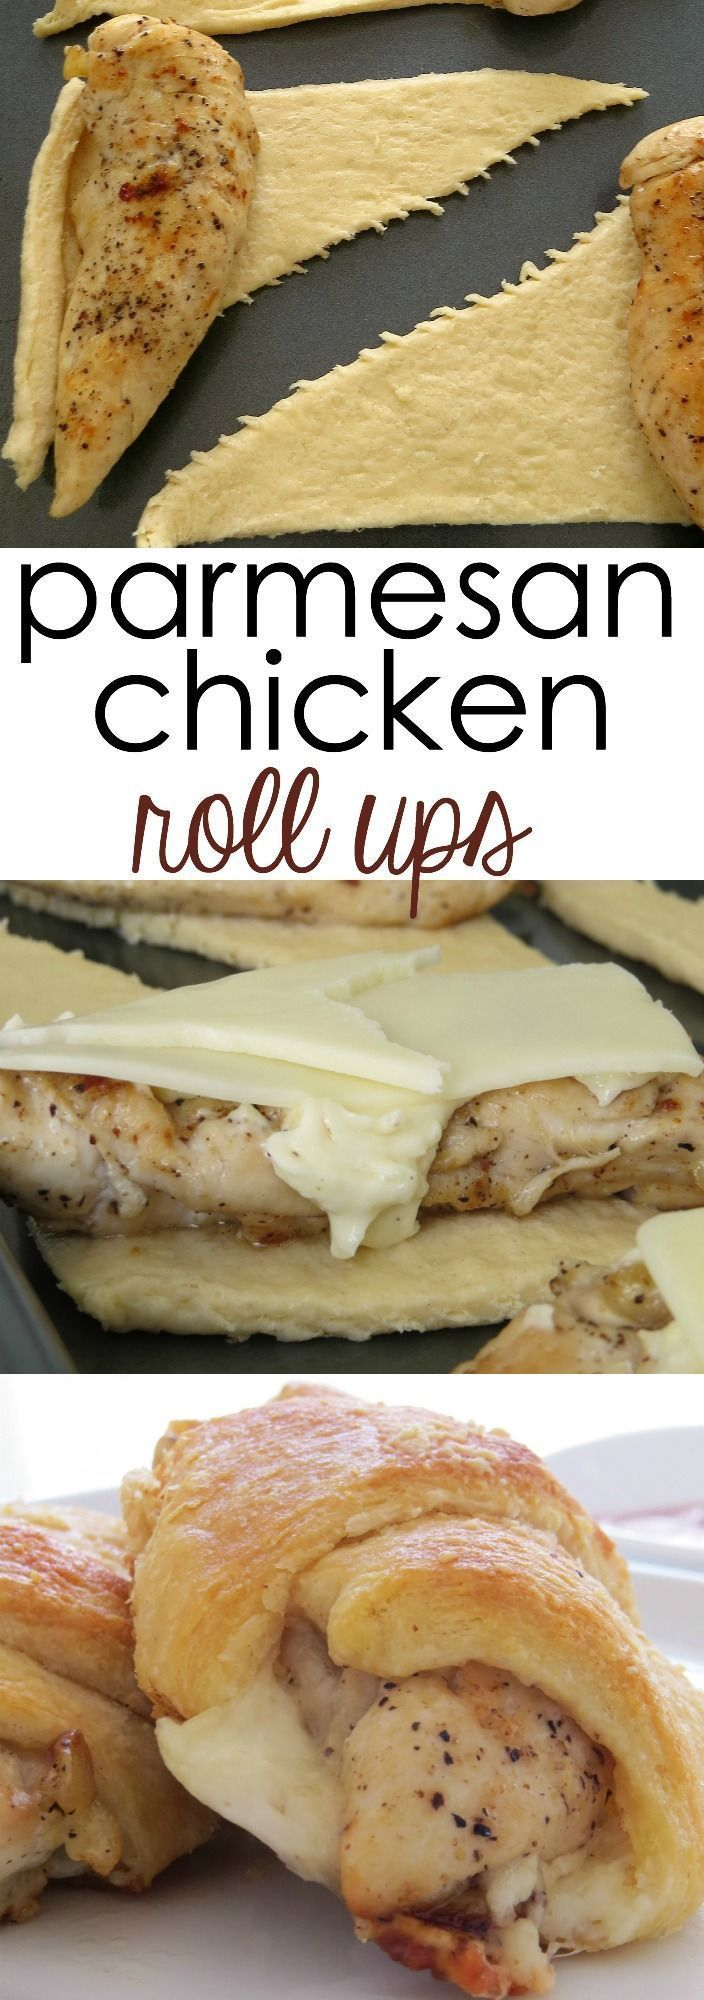 Parmesan Chicken Roll Ups Recipe Food And Recipes Chicken